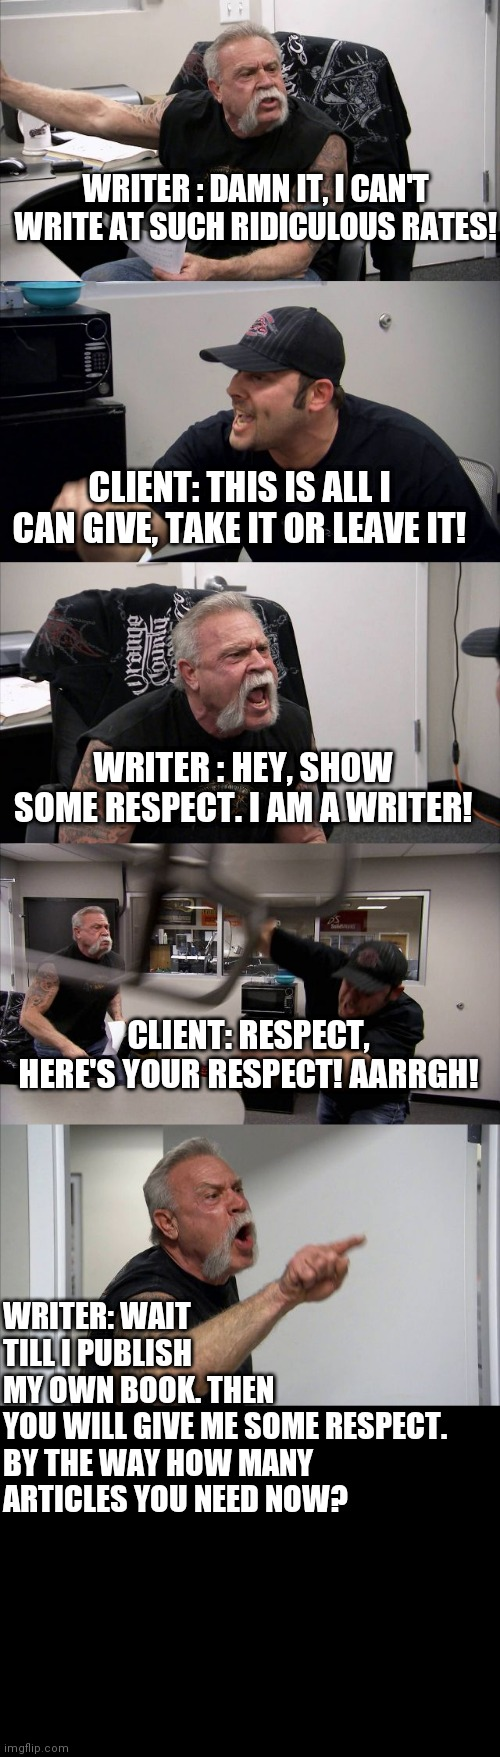 American Chopper Argument |  WRITER : DAMN IT, I CAN'T WRITE AT SUCH RIDICULOUS RATES! CLIENT: THIS IS ALL I CAN GIVE, TAKE IT OR LEAVE IT! WRITER : HEY, SHOW SOME RESPECT. I AM A WRITER! CLIENT: RESPECT, HERE'S YOUR RESPECT! AARRGH! WRITER: WAIT TILL I PUBLISH MY OWN BOOK. THEN YOU WILL GIVE ME SOME RESPECT.   BY THE WAY HOW MANY ARTICLES YOU NEED NOW? | image tagged in memes,writing,writers,write | made w/ Imgflip meme maker